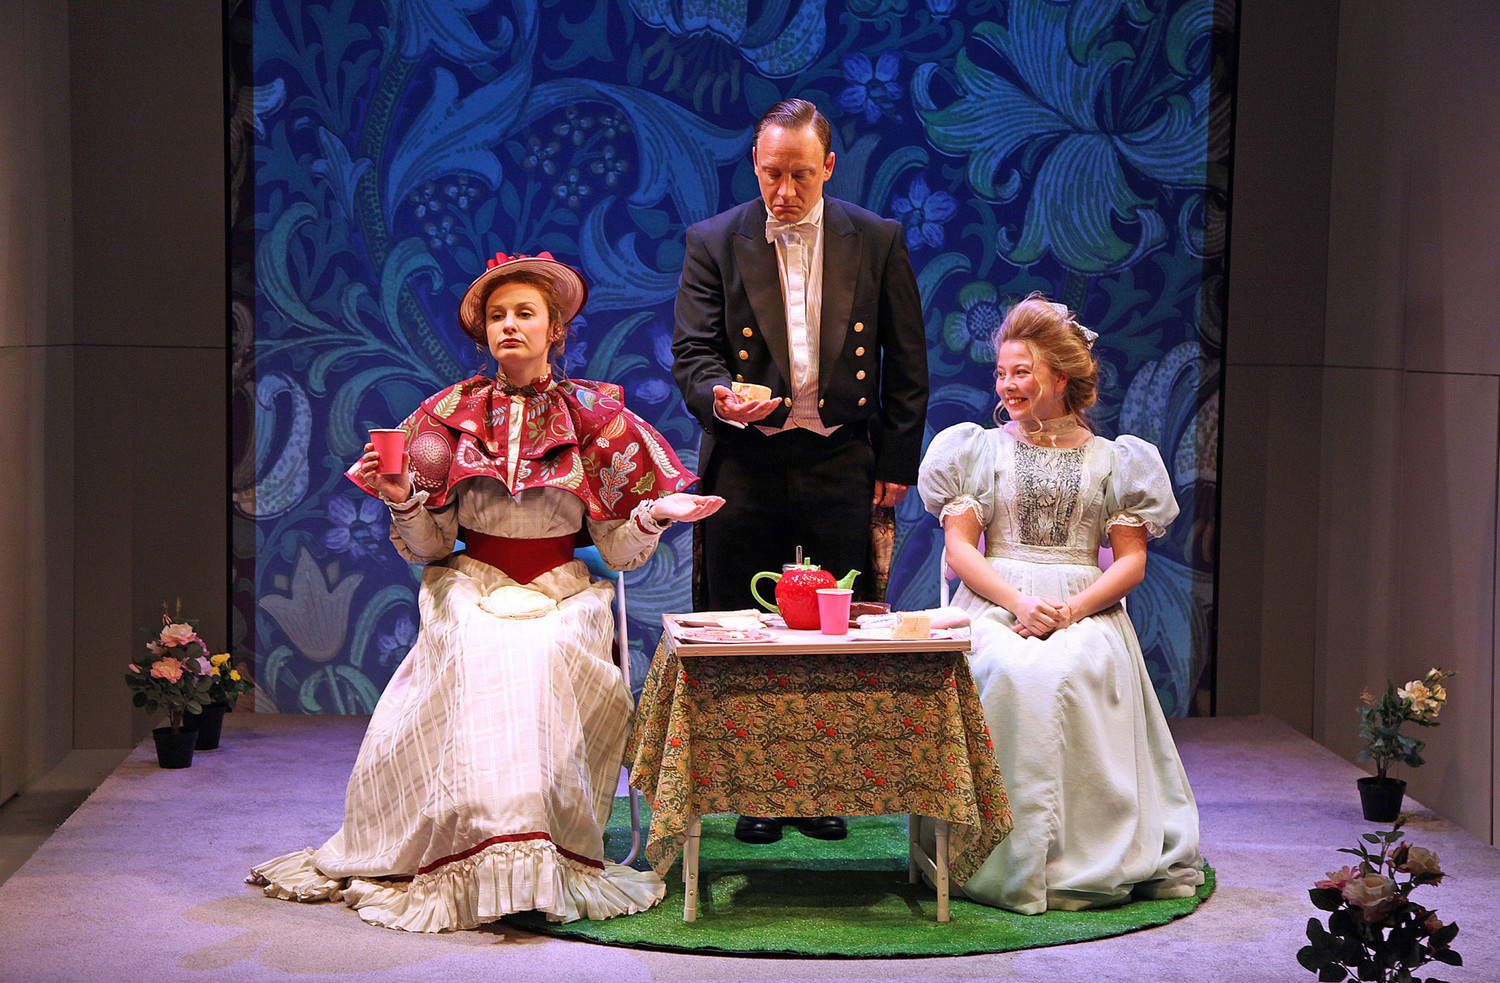 BWW Review: THE IMPORTANCE OF BEING EARNEST, The Watermill Theatre